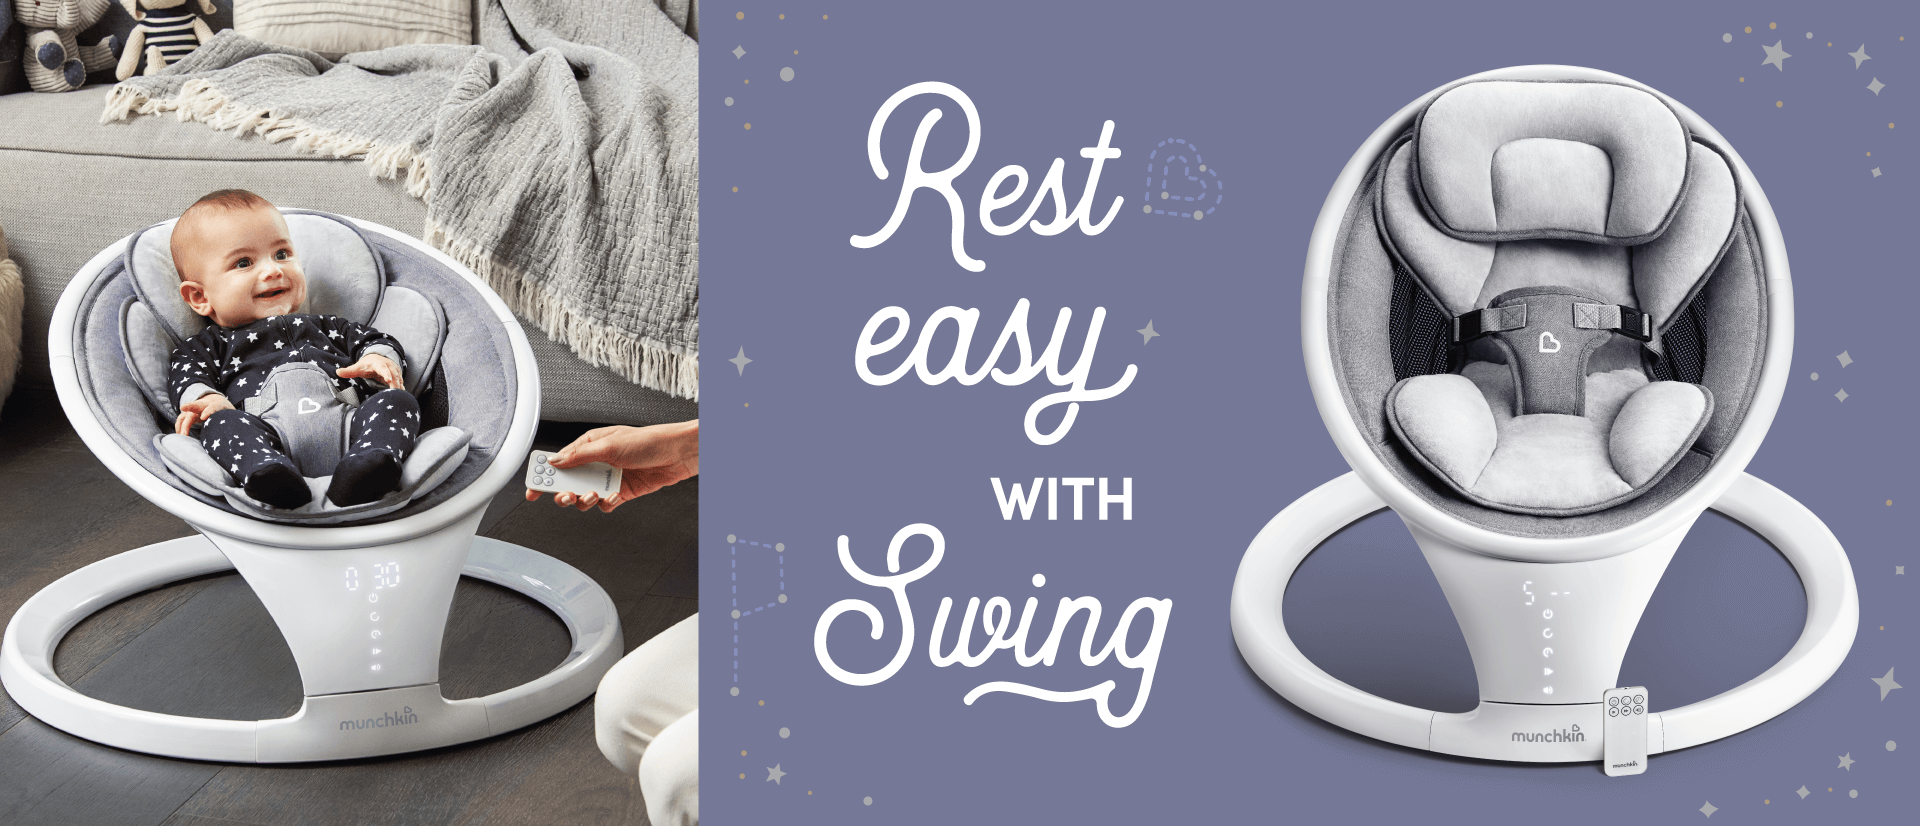 Soothe your little one with Munchkin's lightweight, Bluetooth-enabled baby rocker